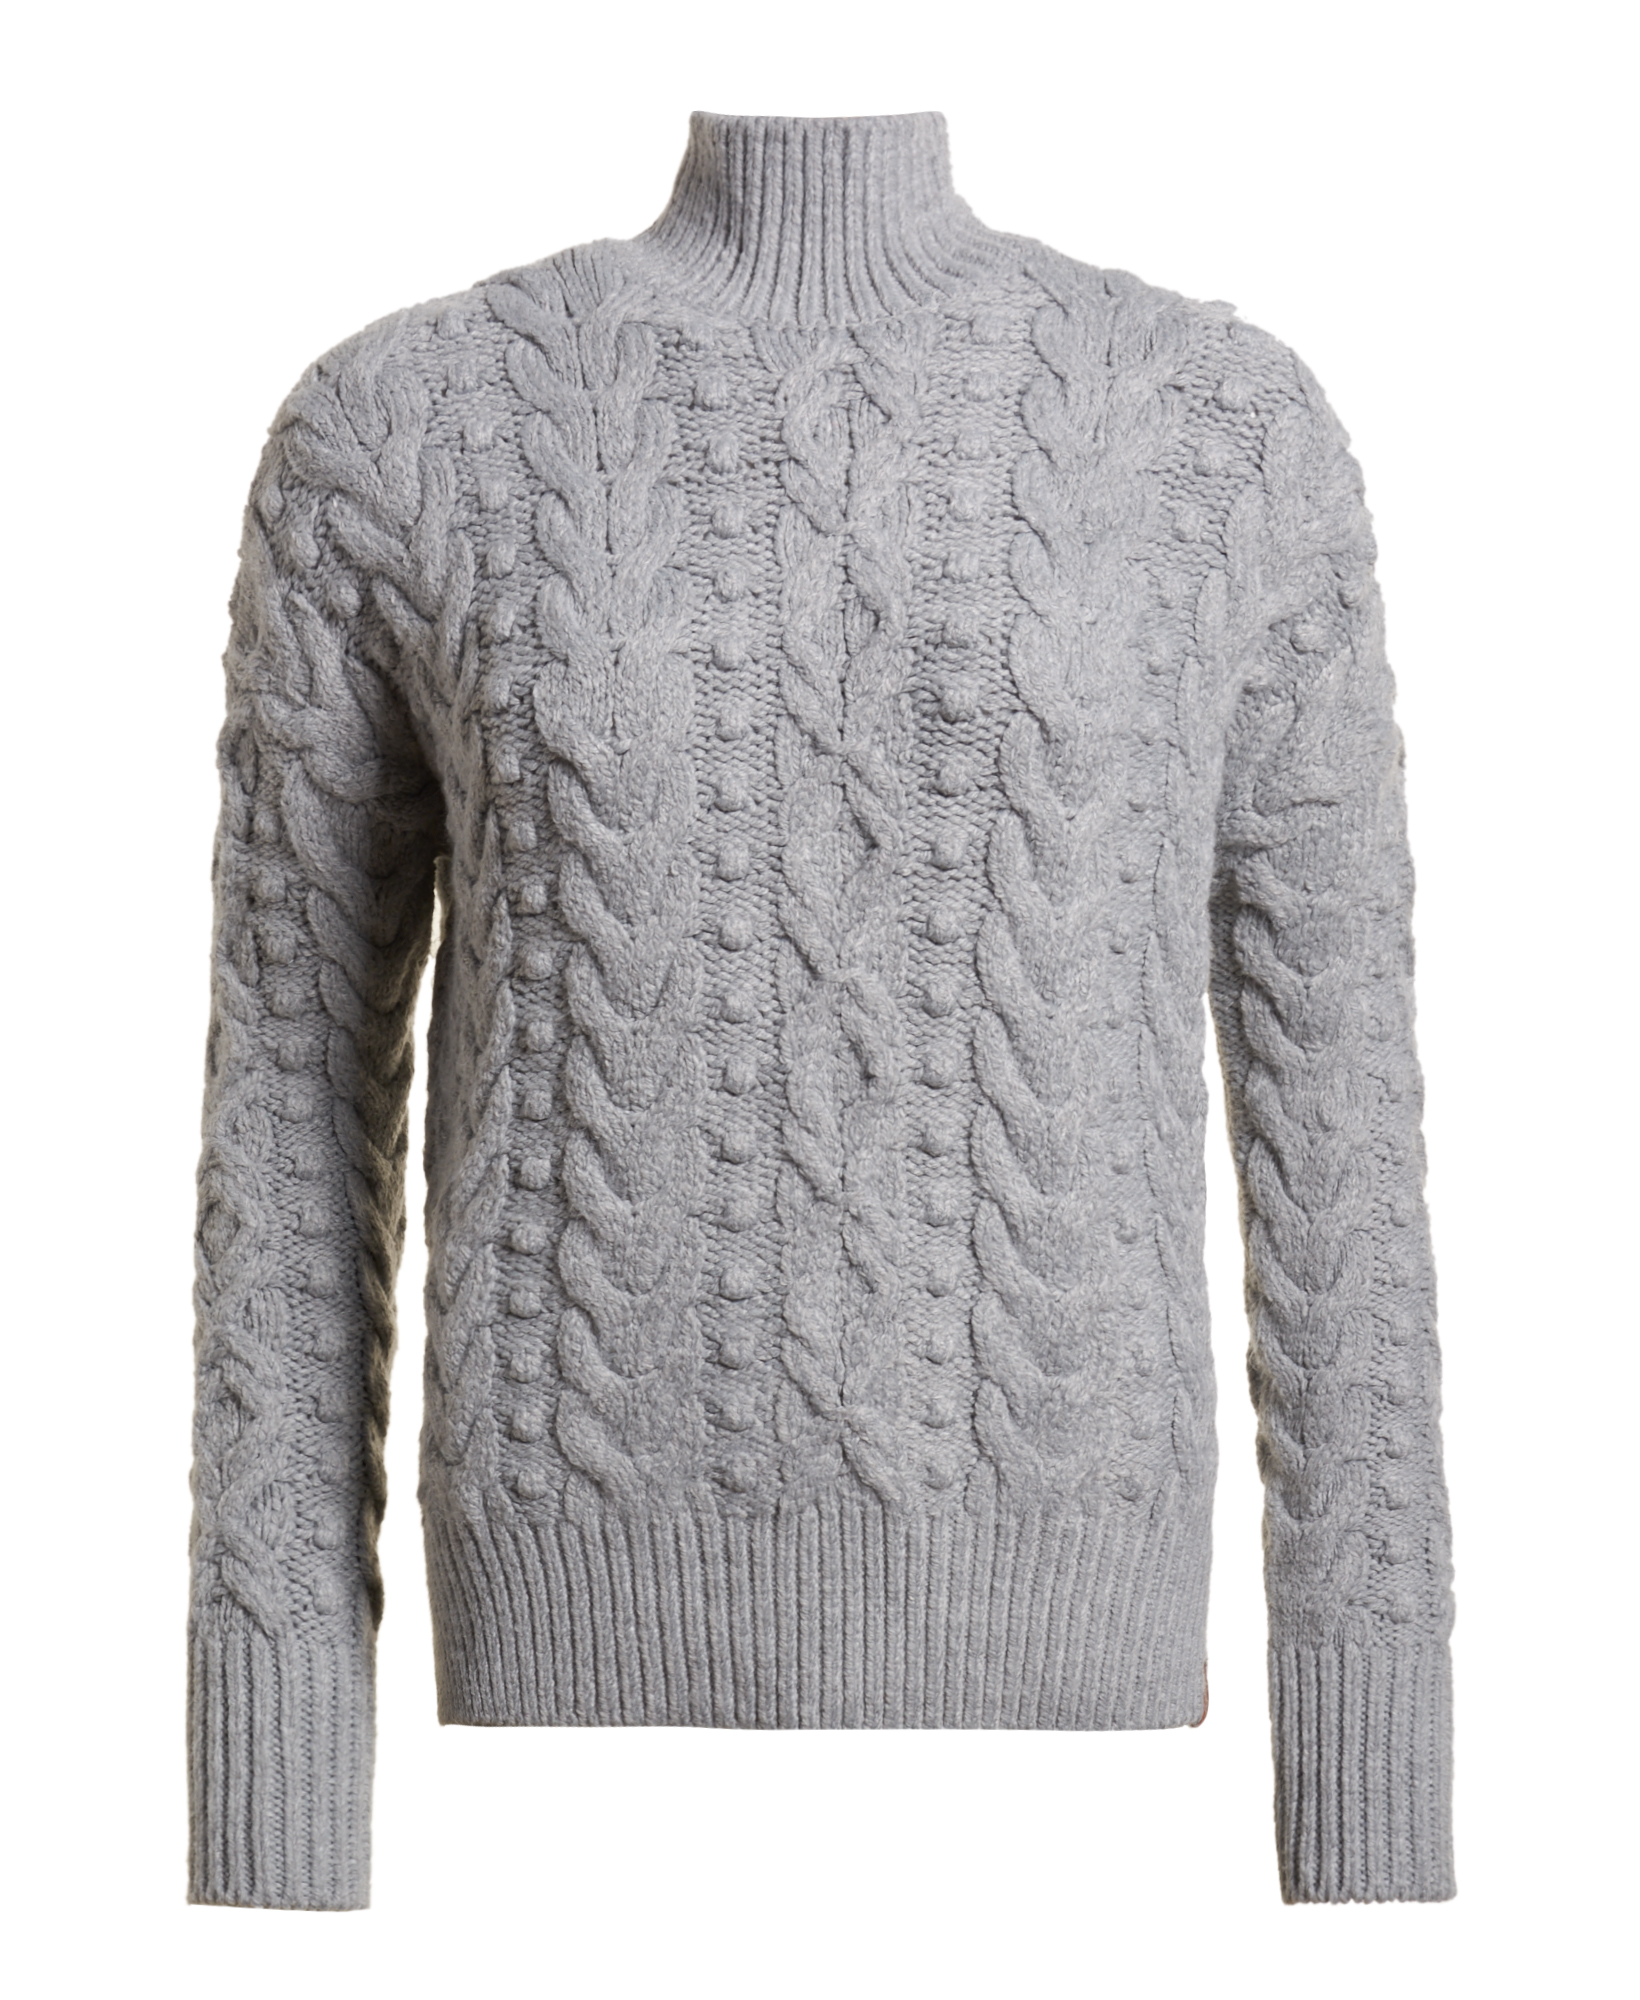 62716347133f Sentinel New Womens Superdry Kiki Cable Knit Jumper Pale Grey